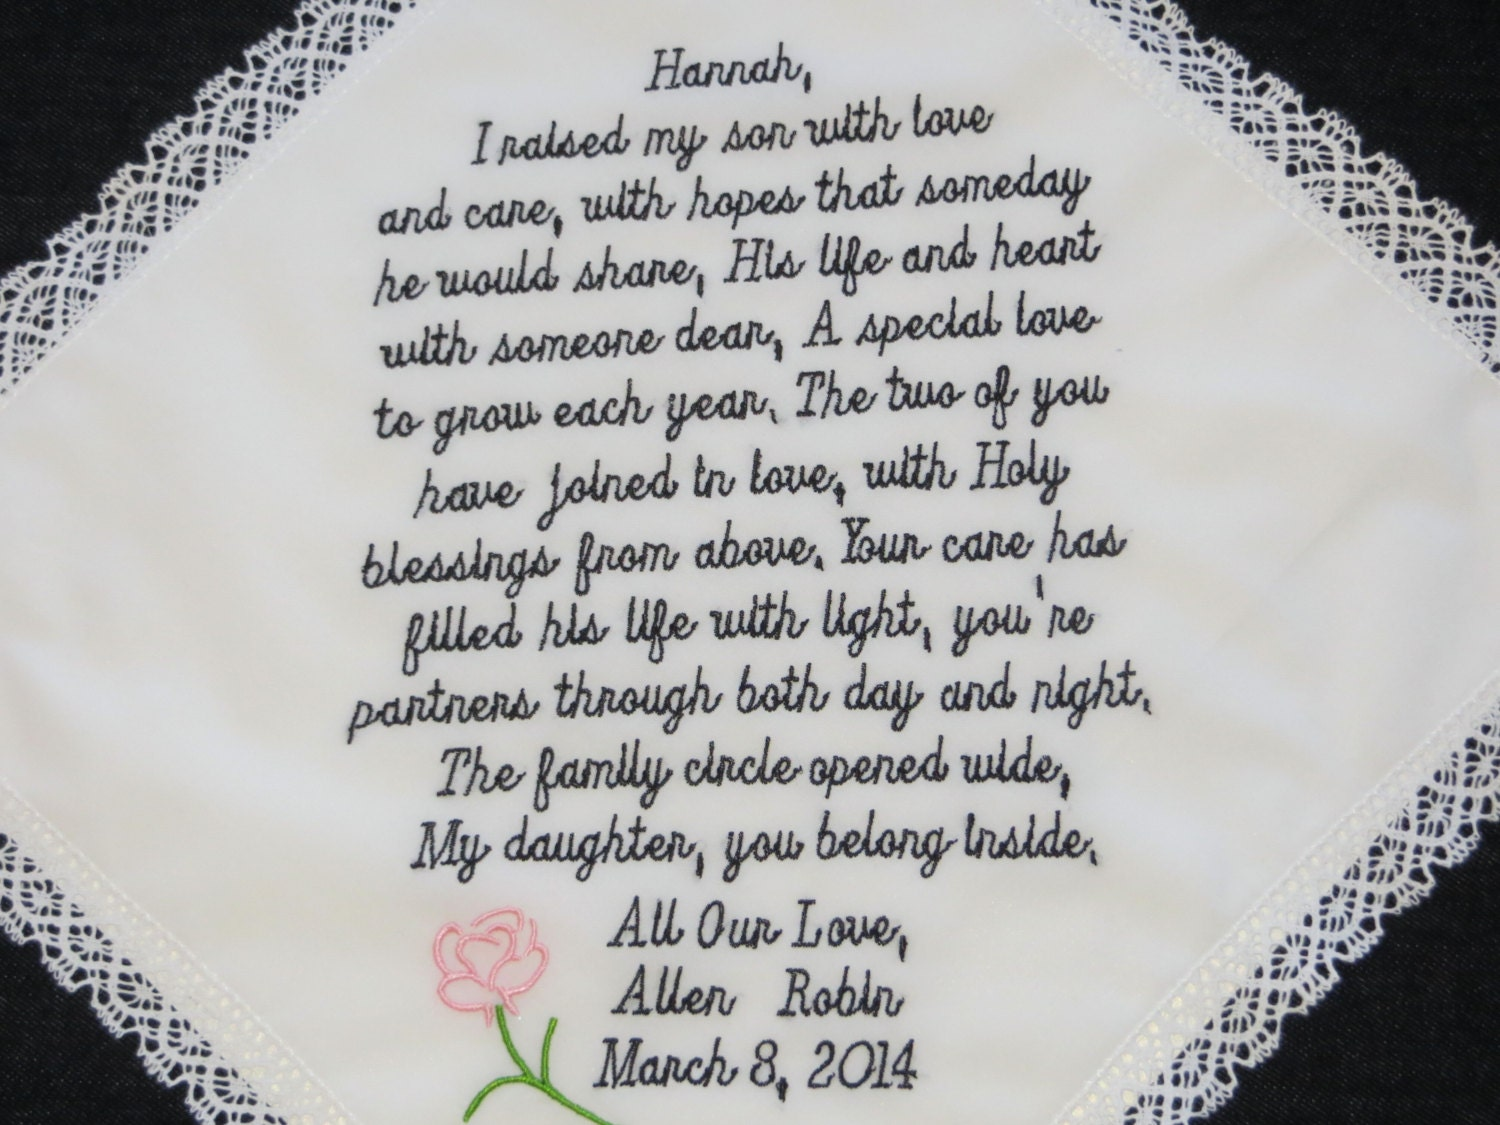 Daughter Son In Law Personalized Poem Christmas Gift: 74 Words Of Your Choice. Welcome Your New Daughter-in-law Into